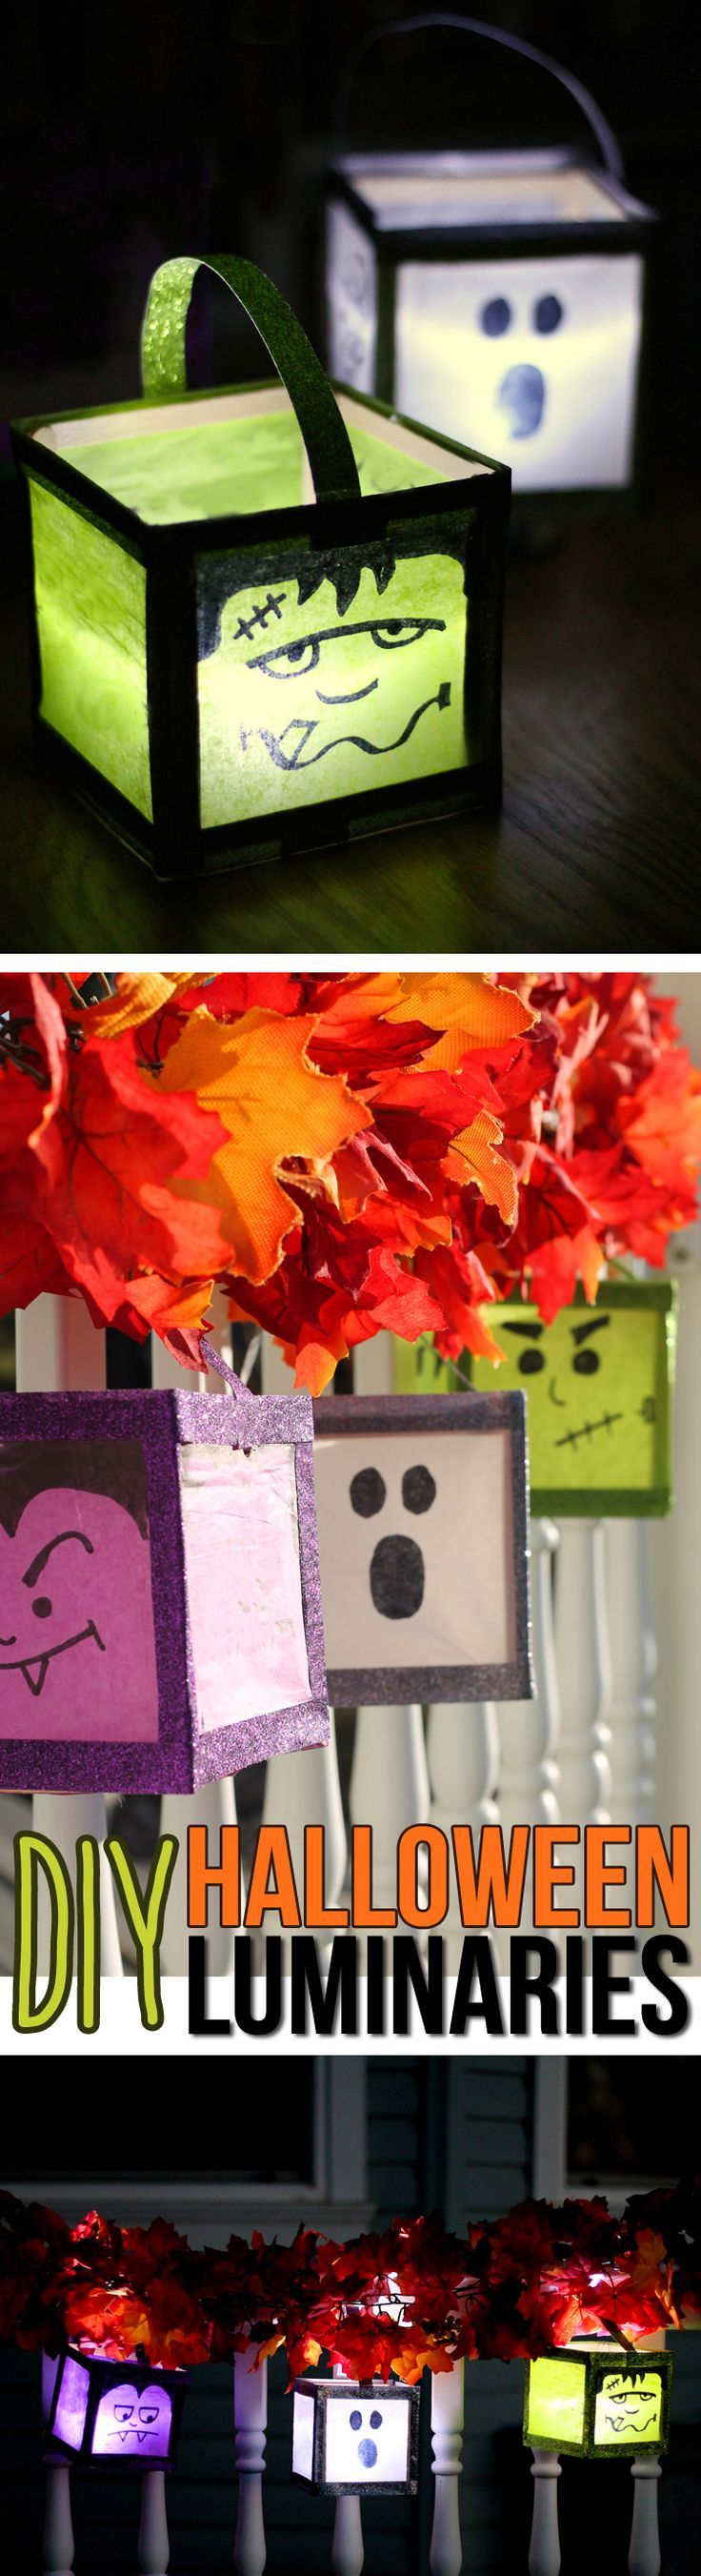 Make these cute Halloween luminaries for the front porch. An easy craft using glitter washi tape, wooden craft sticks and tissue paper. These Halloween decorations look good day AND night!